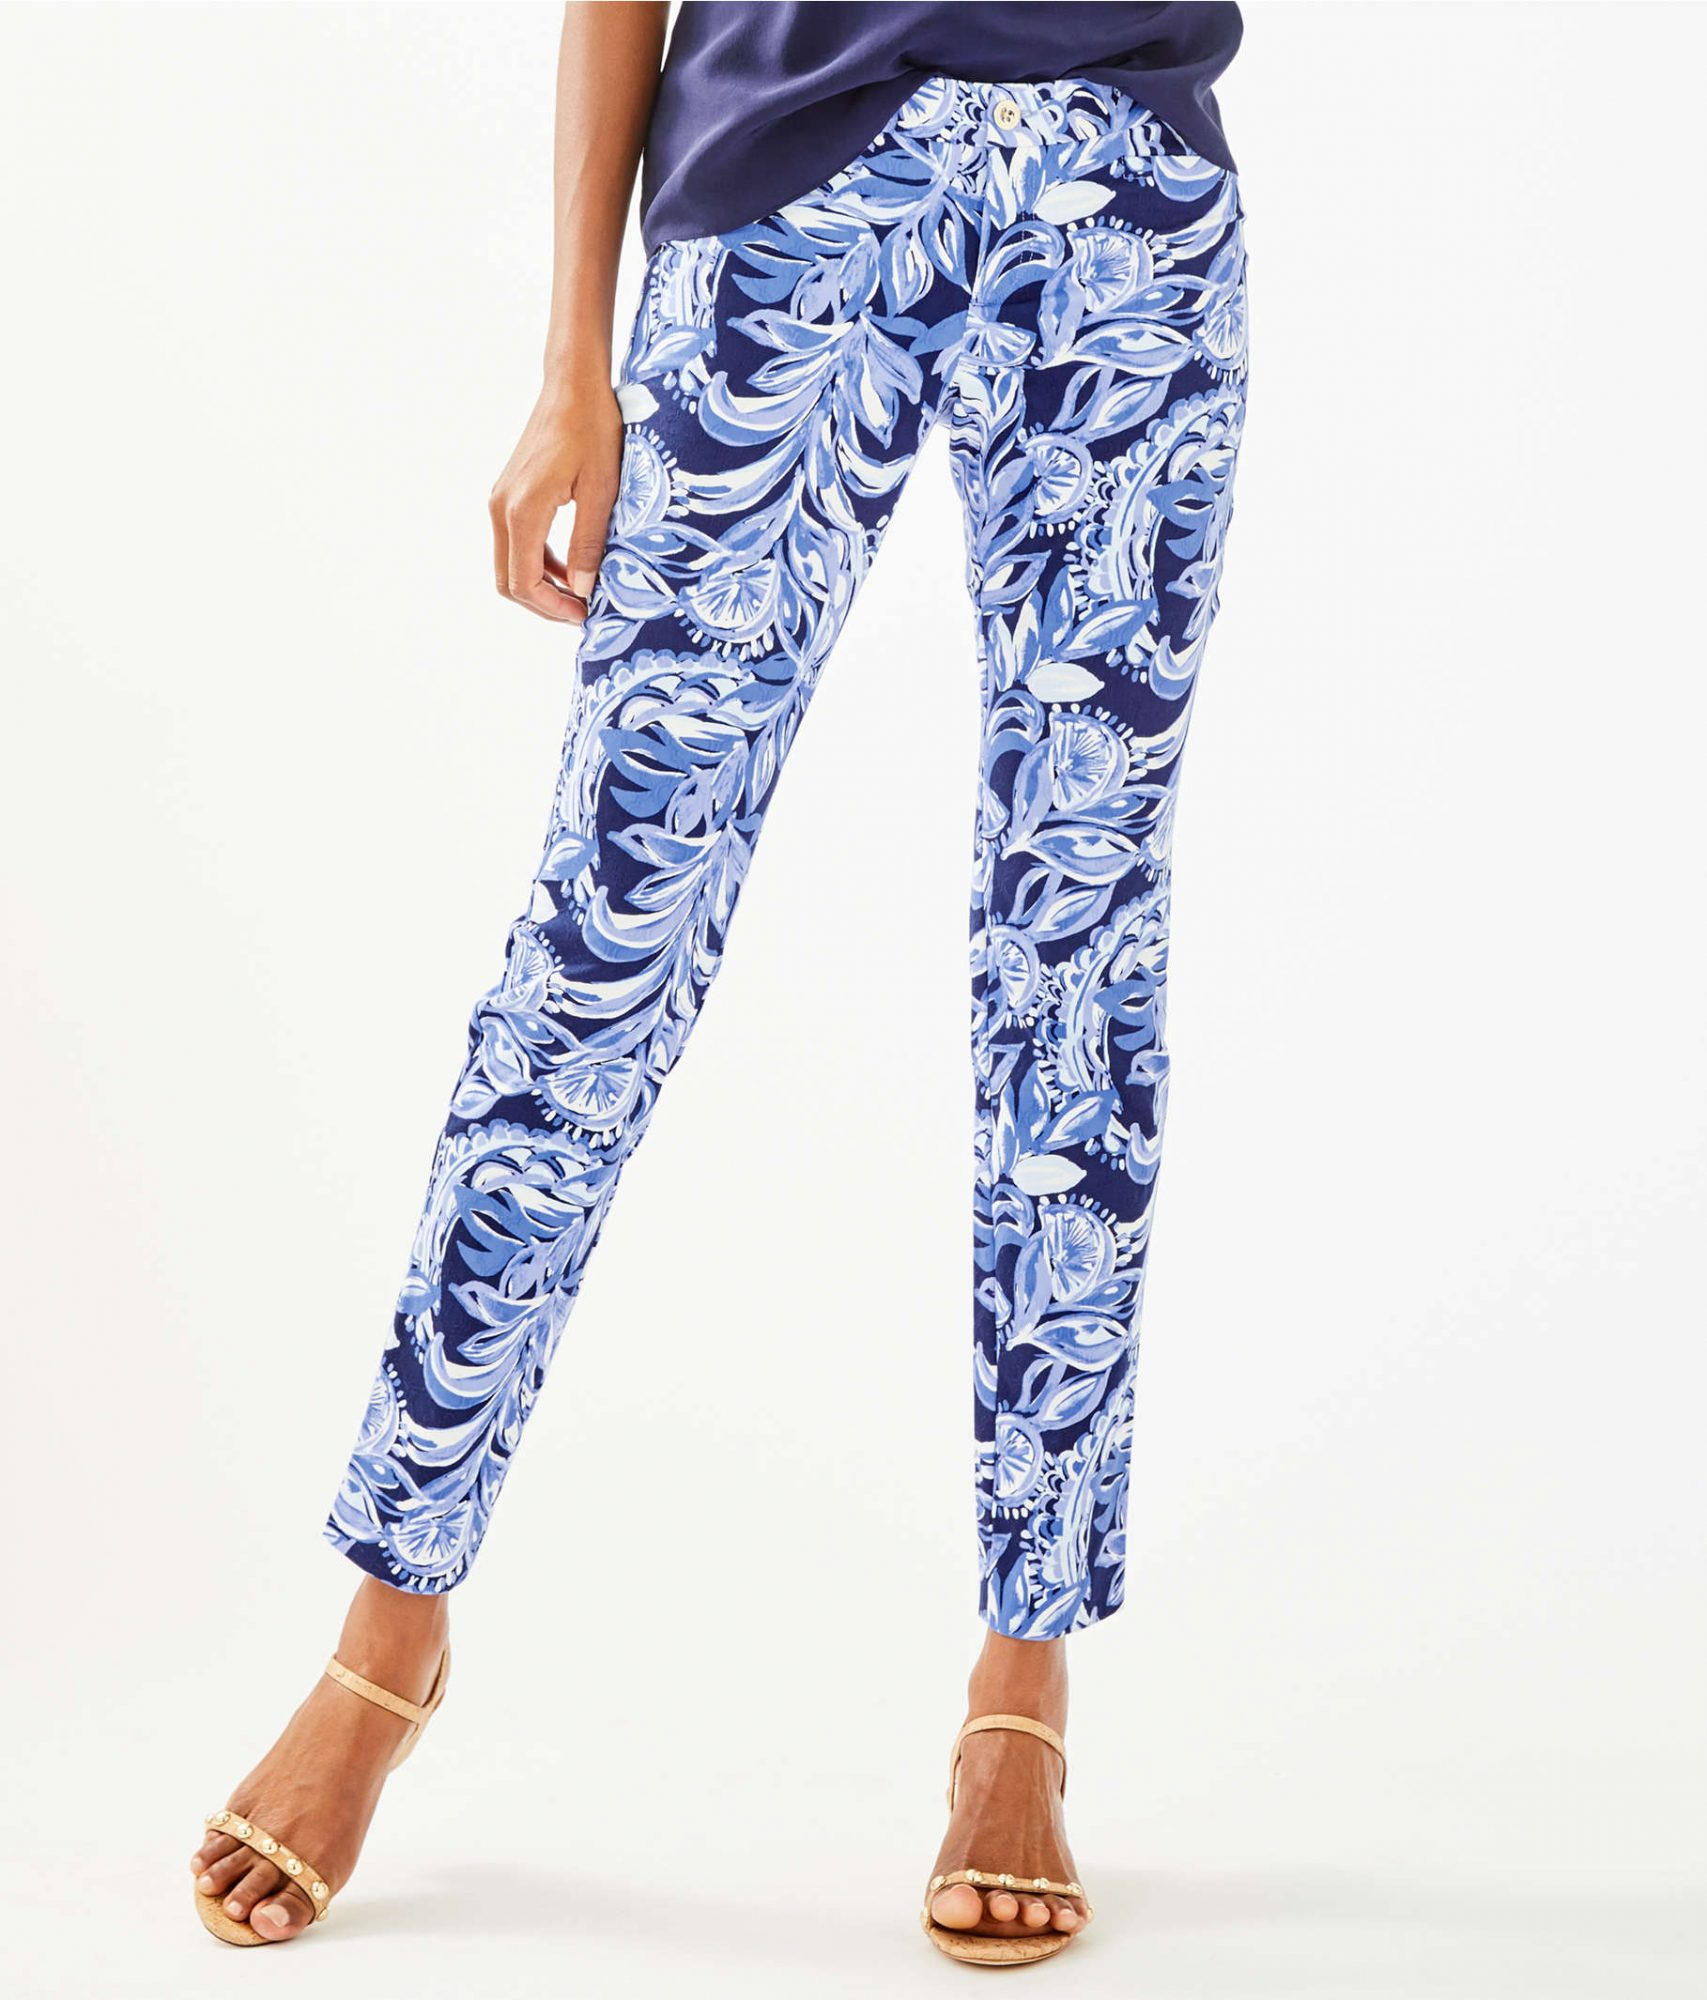 29-Inch Kelly Skinny Ankle Pant at the Lilly Pulitzer After Party Sale